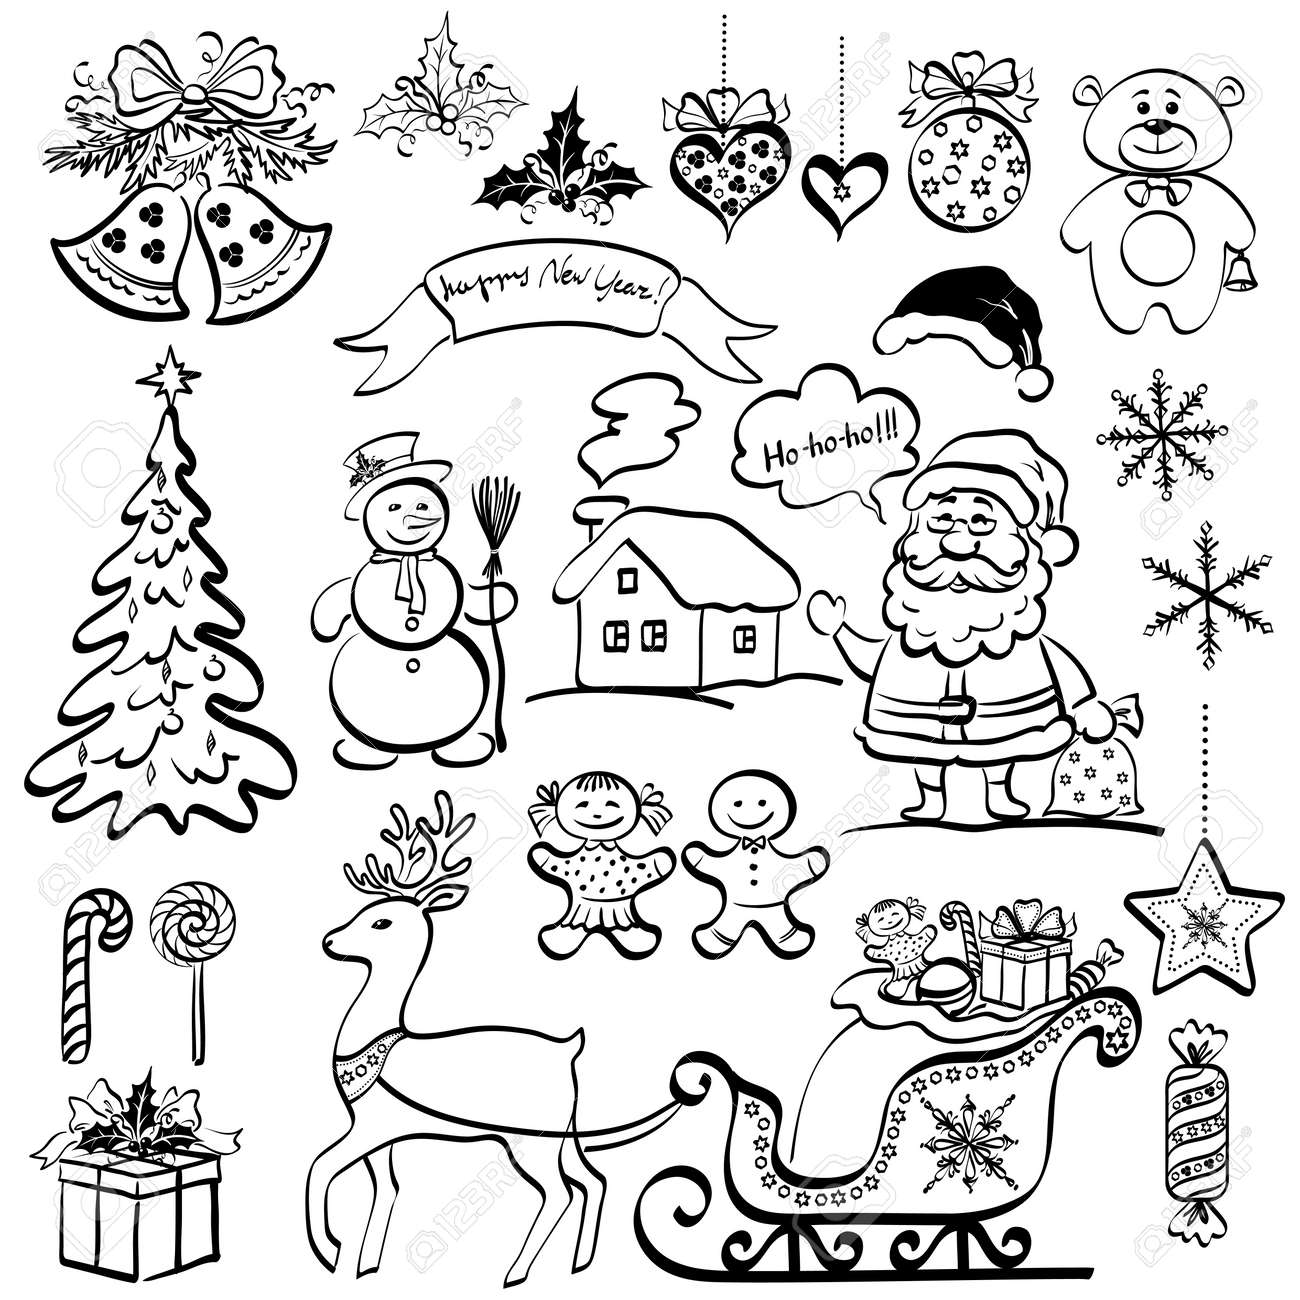 Christmas Elements For Holiday Design Set Of Black Cartoon Silhouettes On White Background Vector Stock